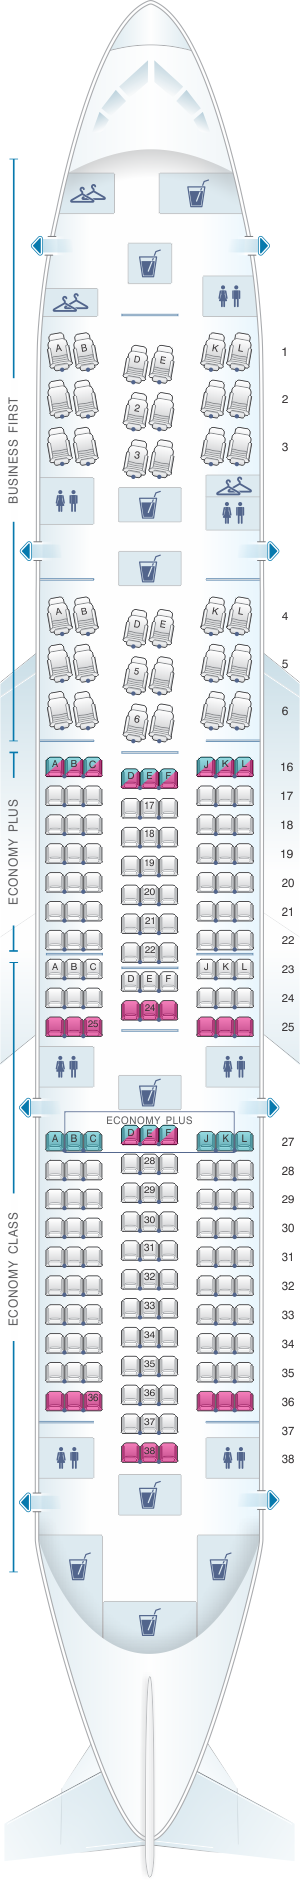 Seat map for United Airlines Boeing B787-8 Dreamliner